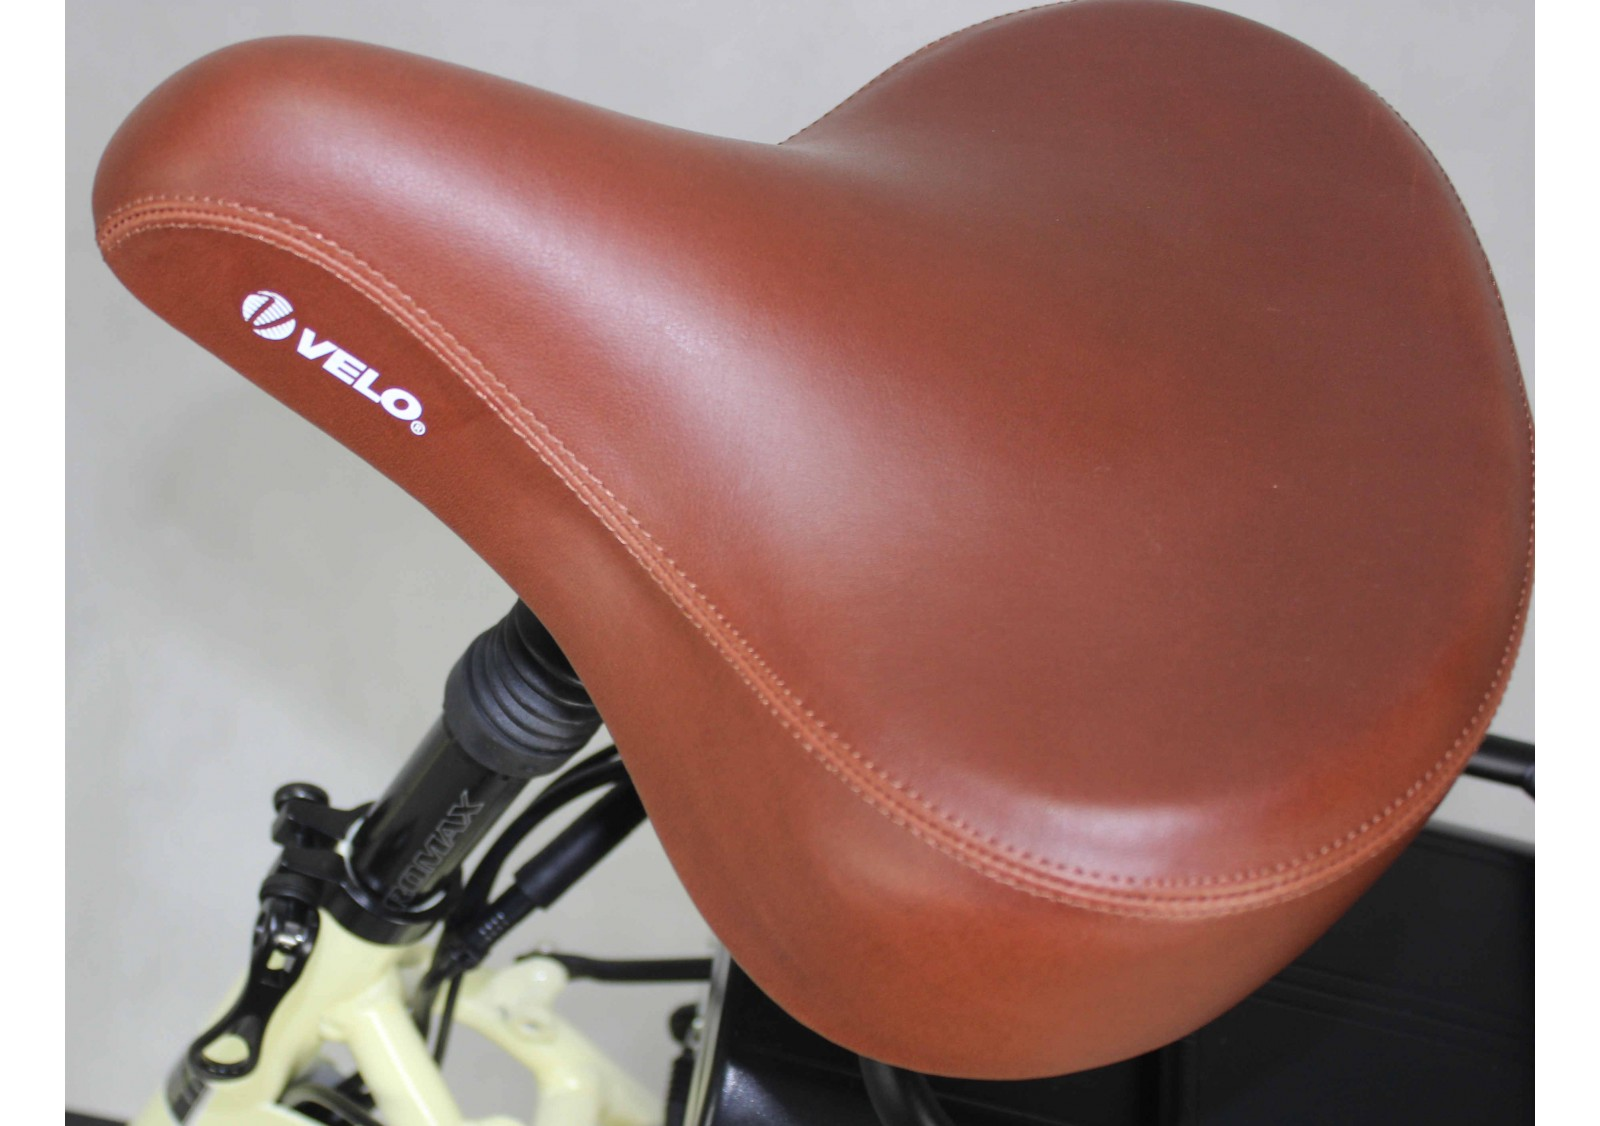 Velo Seat for Mirrorstone e-Bike